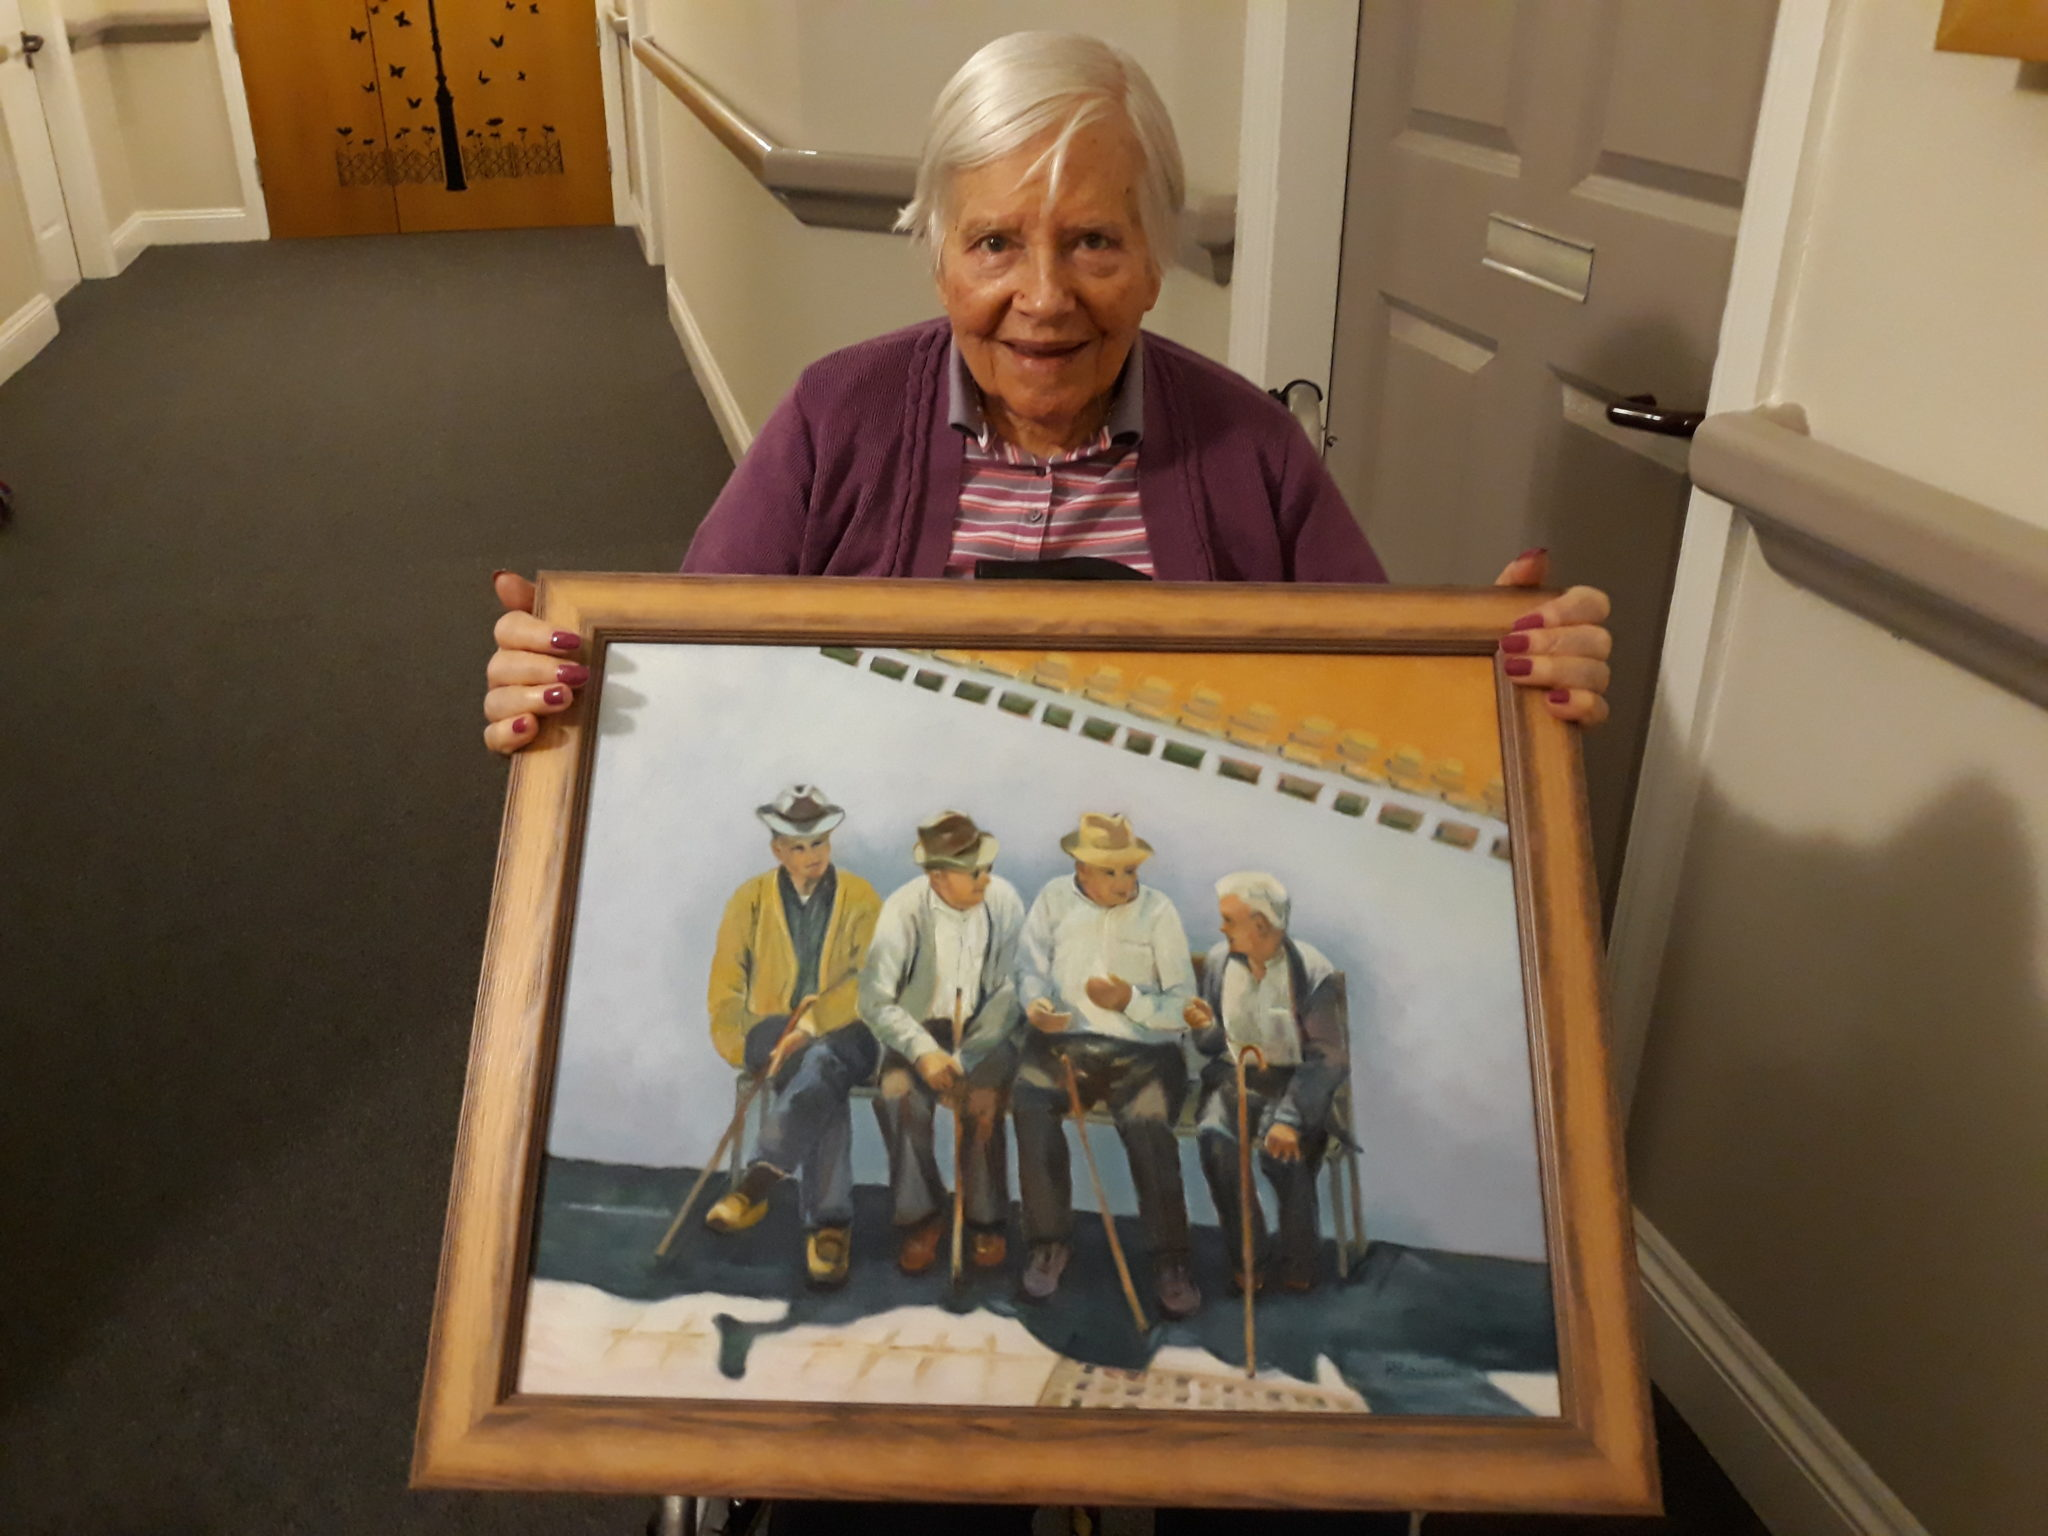 Elizabeth Court resident Rhona Rawson with her painting